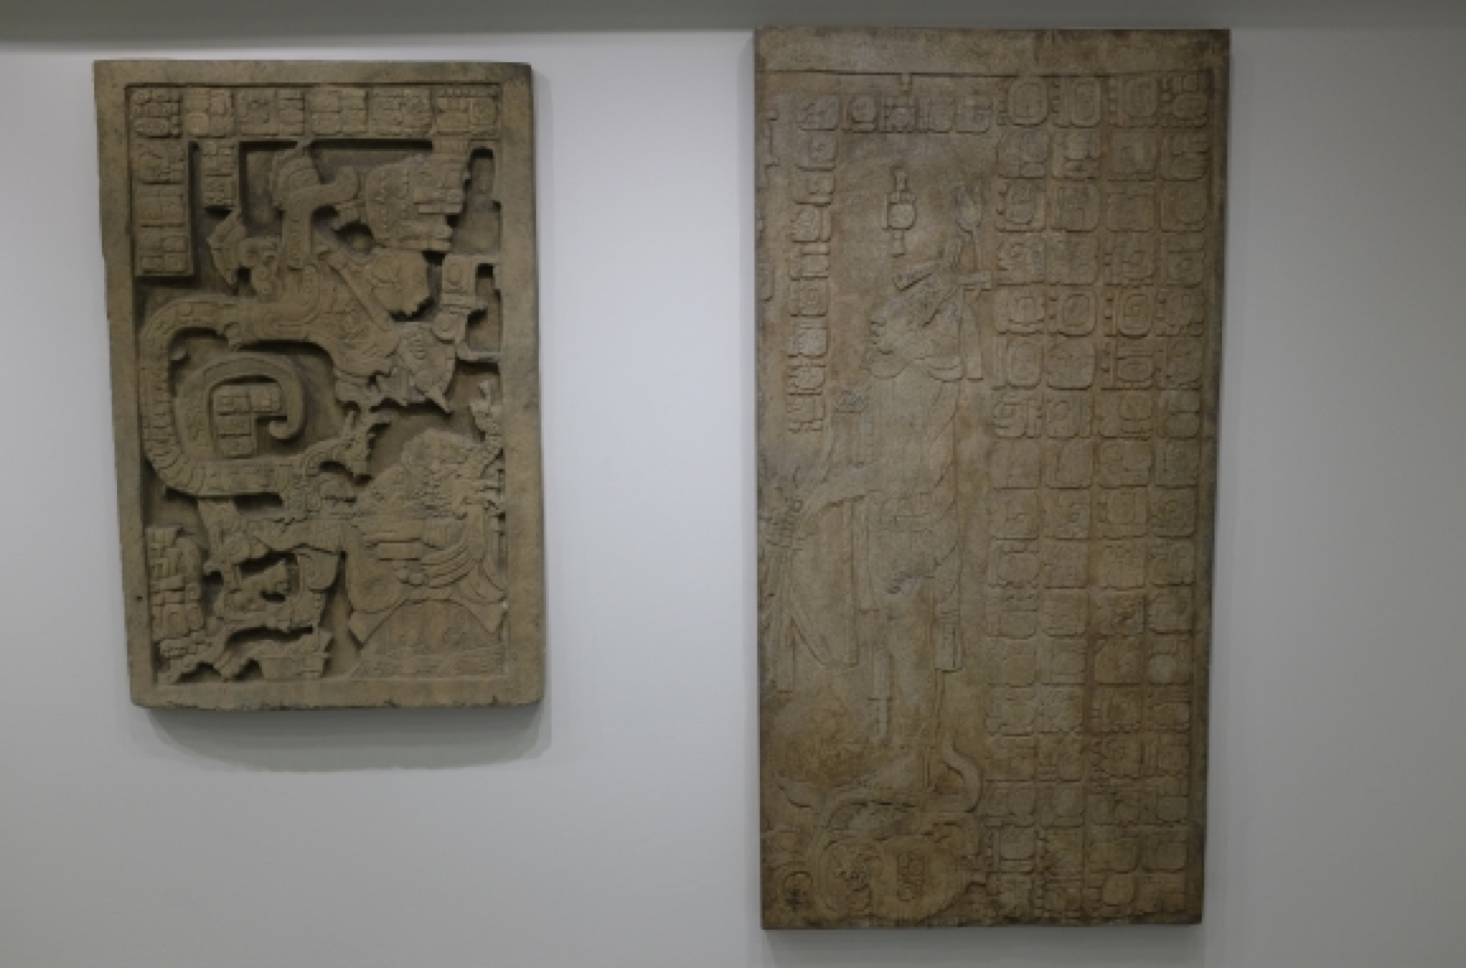 Image of two Maya casts.